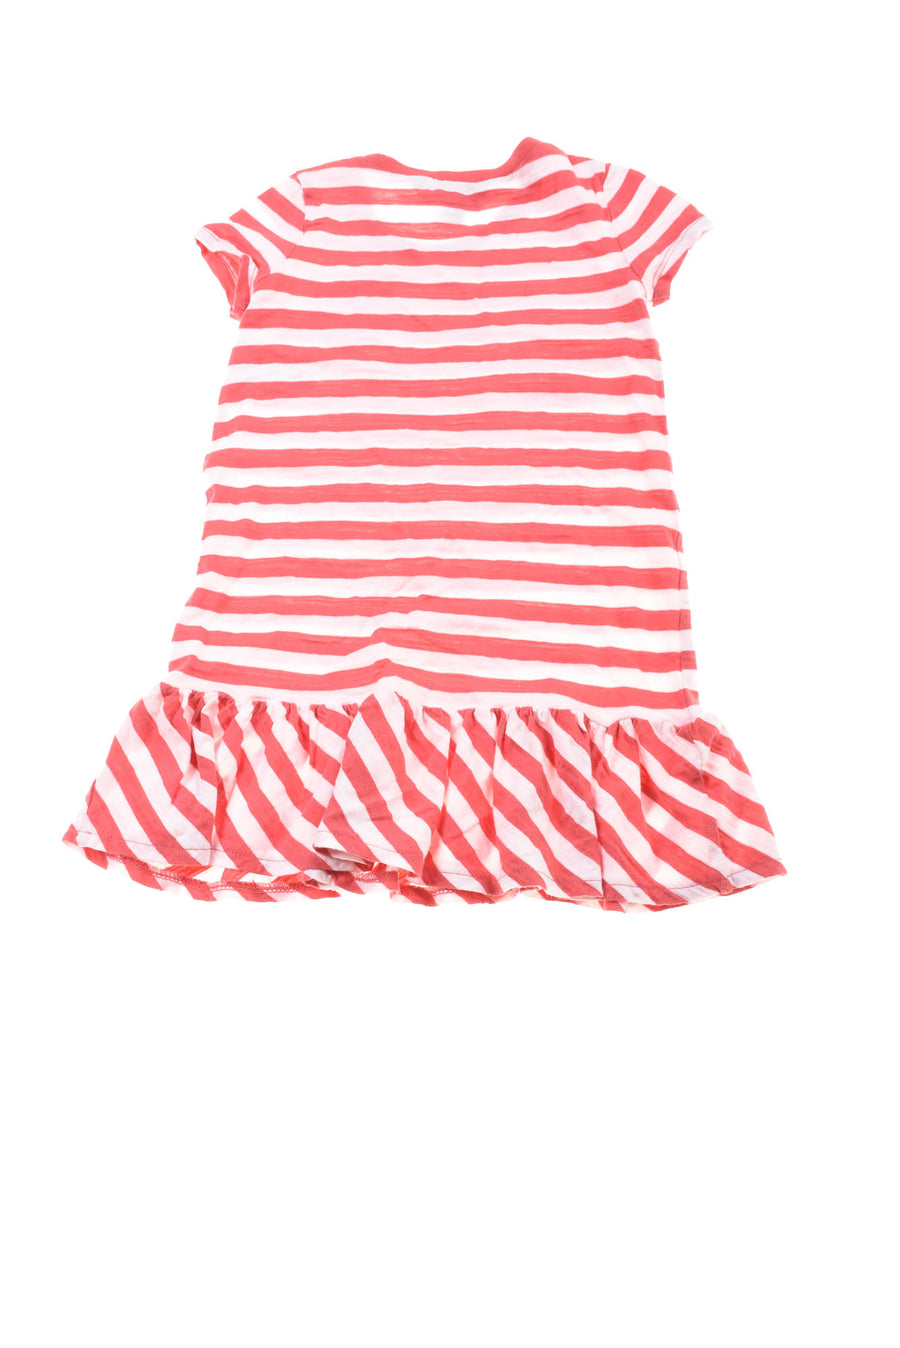 USED Ralph Lauren Girl's Dress Small Red & White